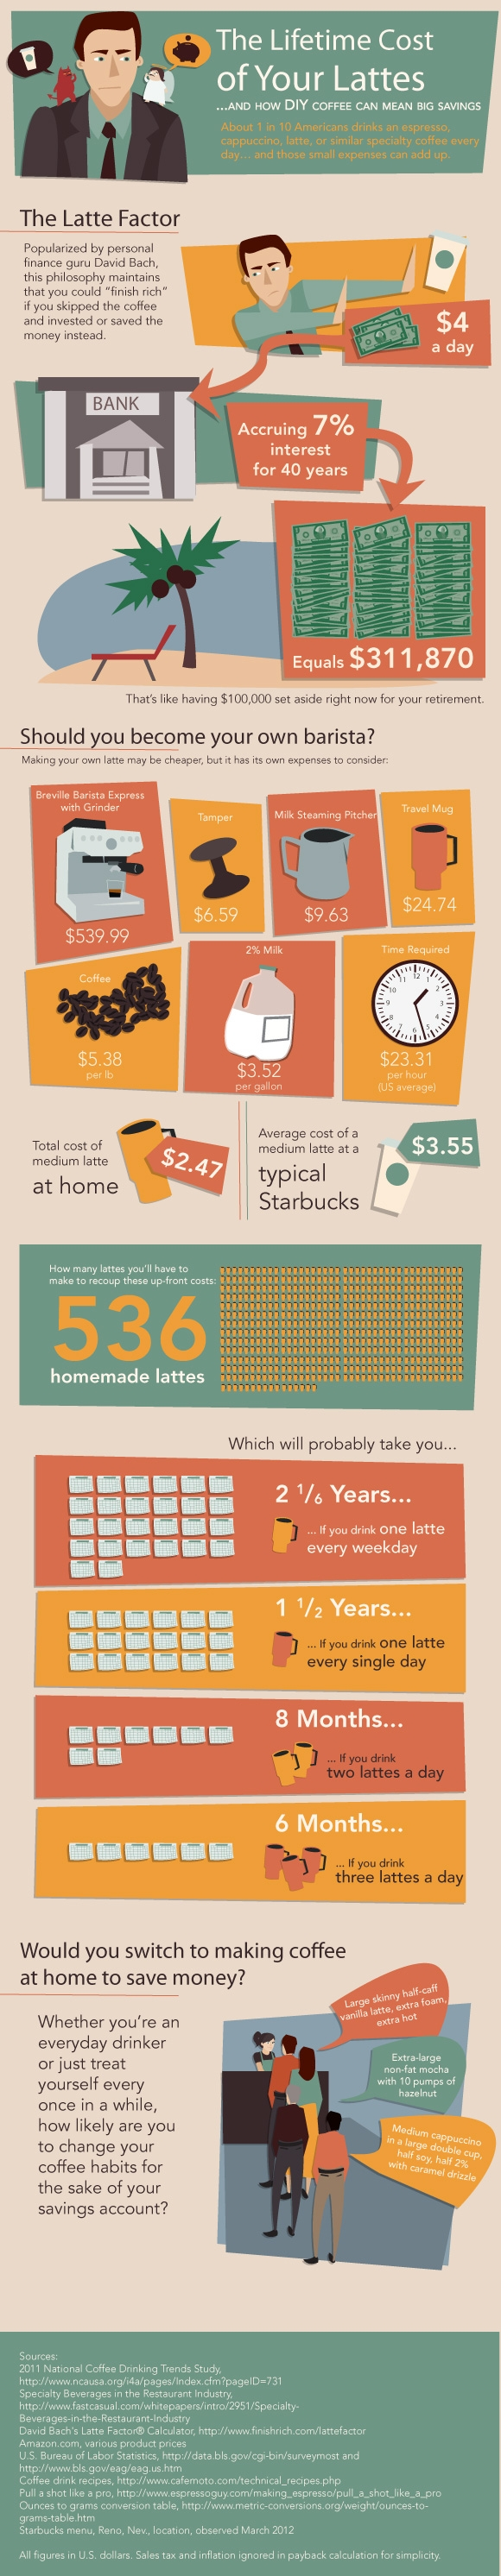 Lifetime cost of your lattes